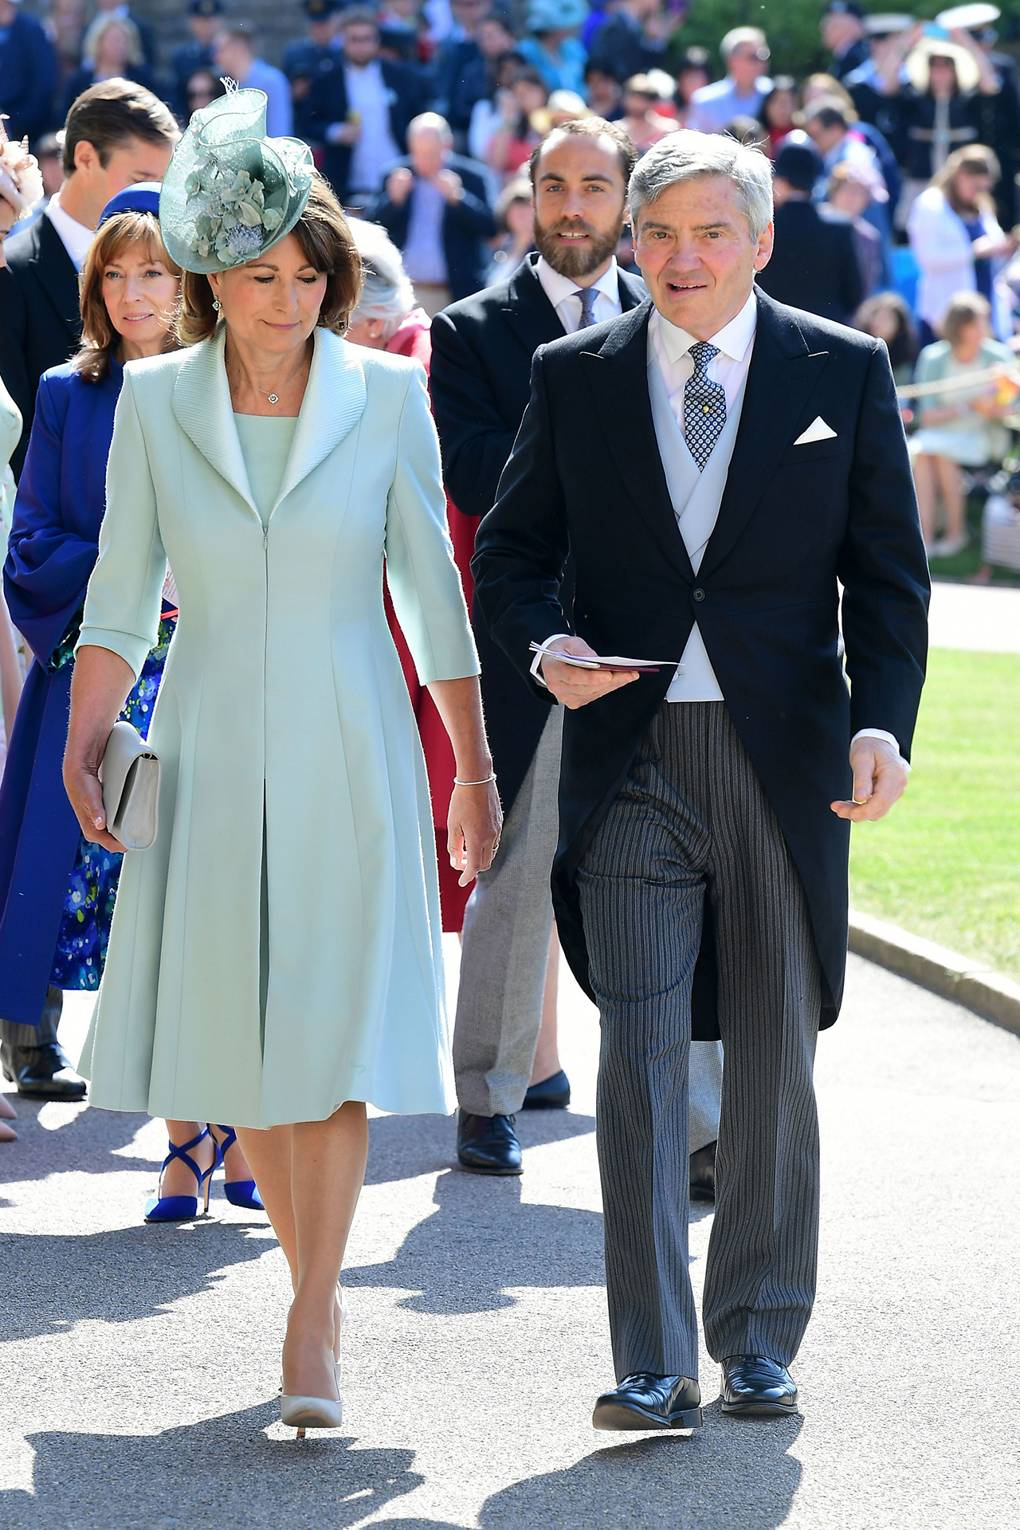 Royal Wedding guest list: The best dressed men at the wedding ...